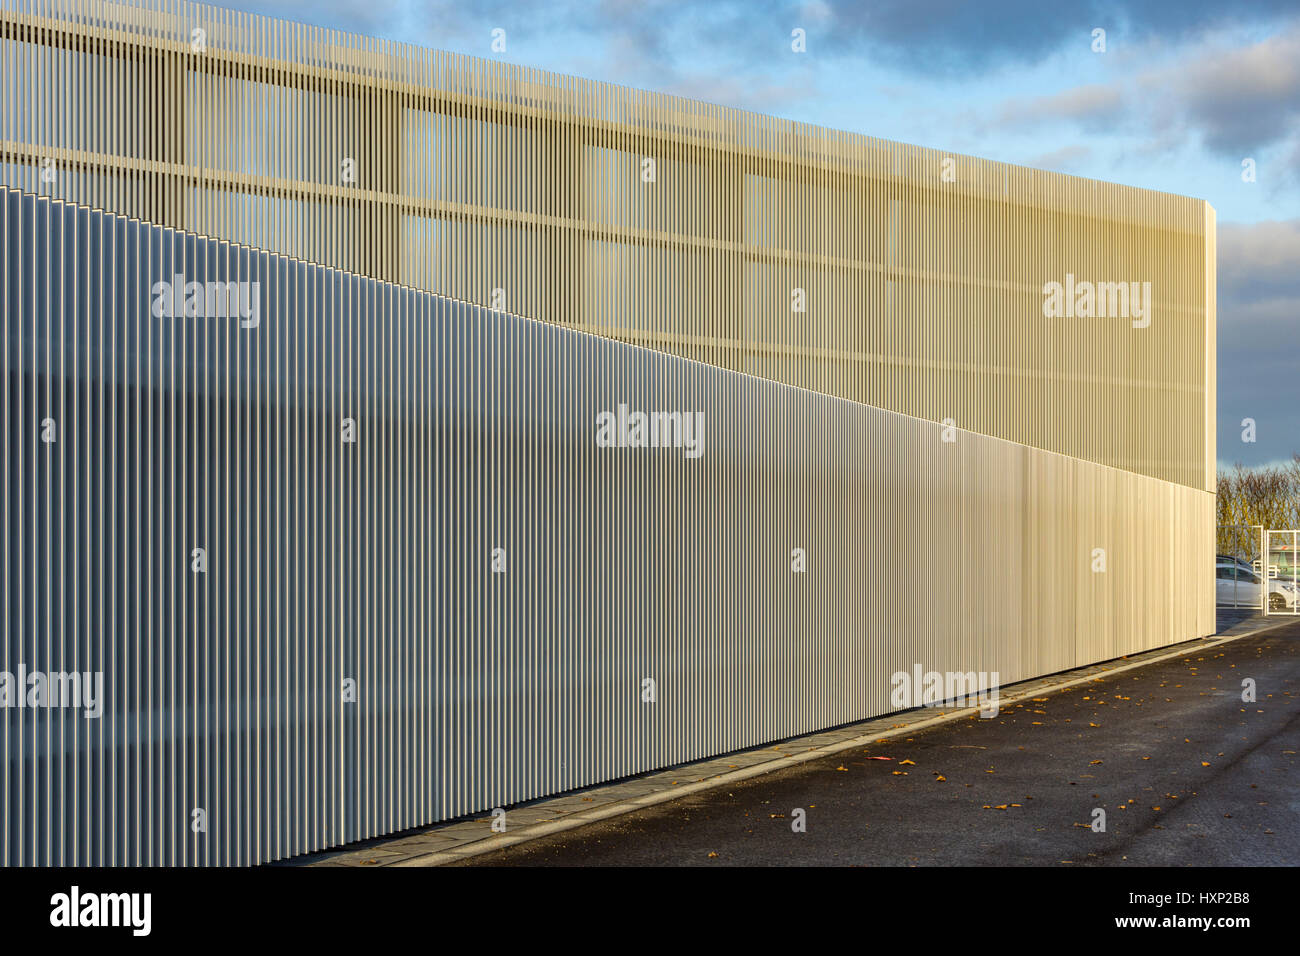 'Nucleus', the Nuclear and Caithness Archives building, Wick, Caithness, Scotland, UK - Stock Image